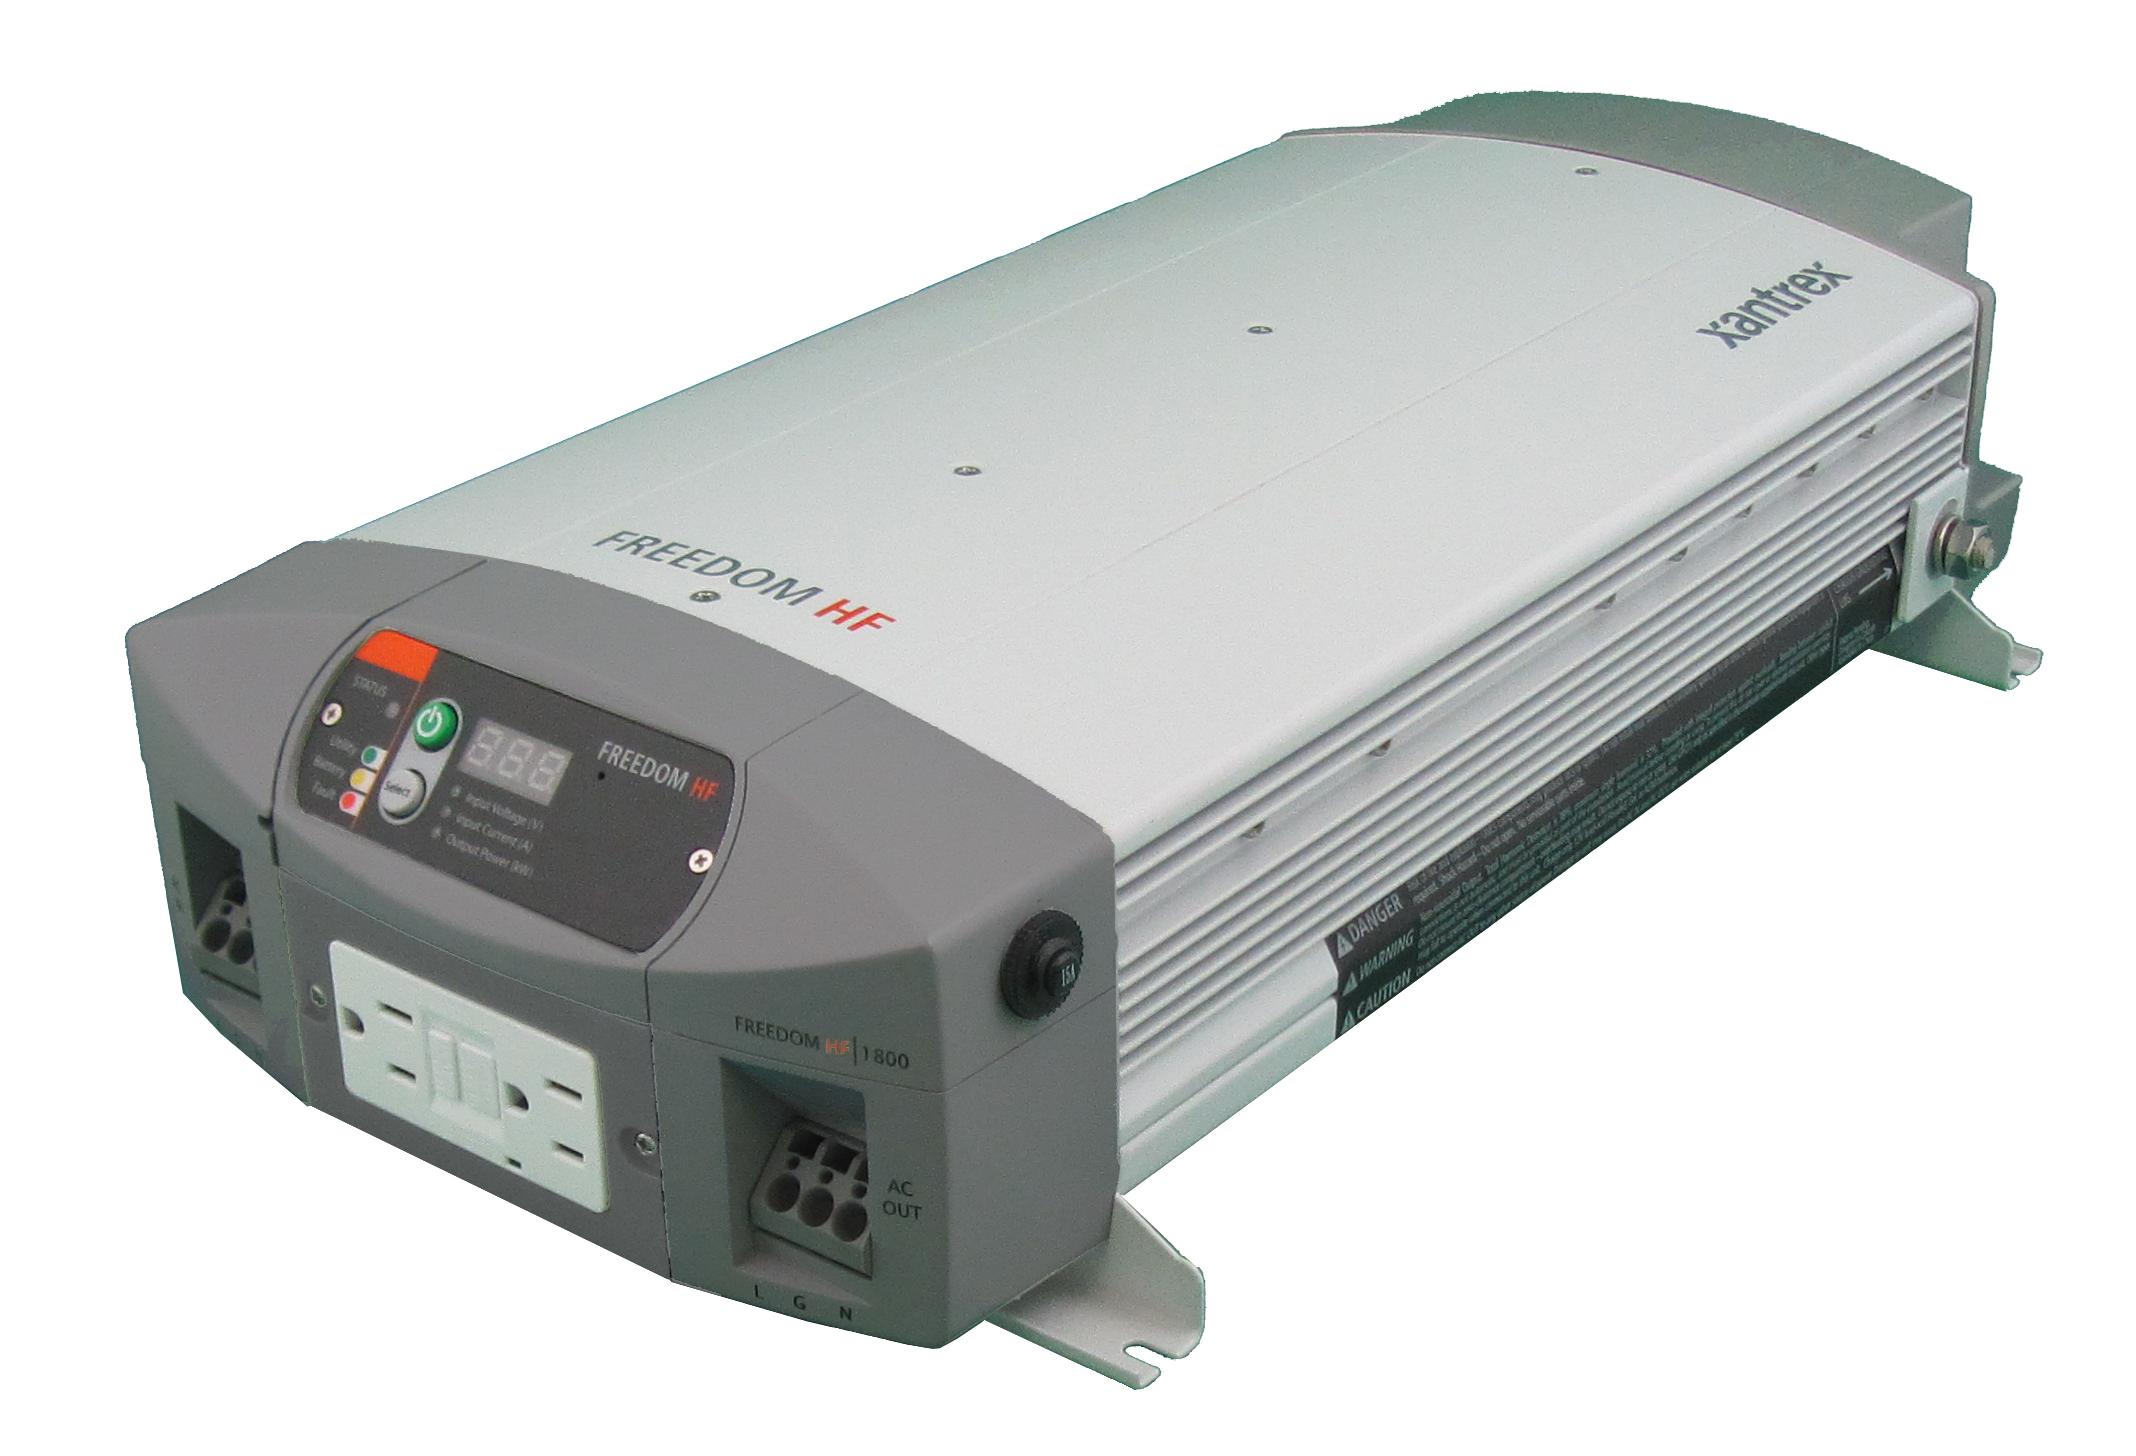 Freedom 20 Inverter Wiring Diagram Library Battery Diagrams A Xantrex Hf Charger Is Combination Of An